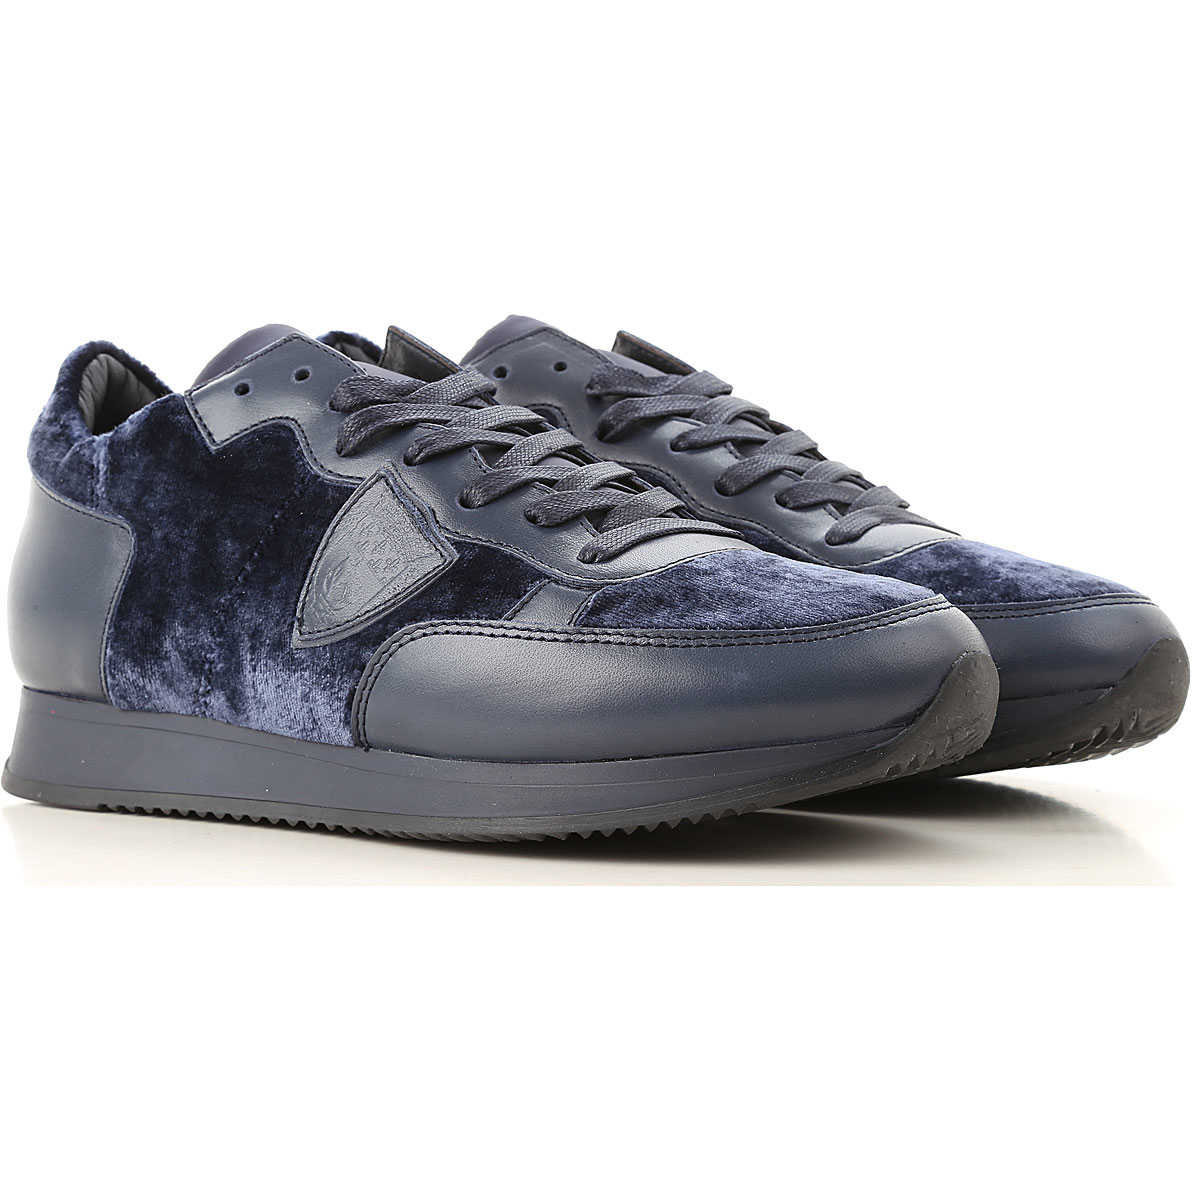 Philippe Model Sneakers for Women On Sale